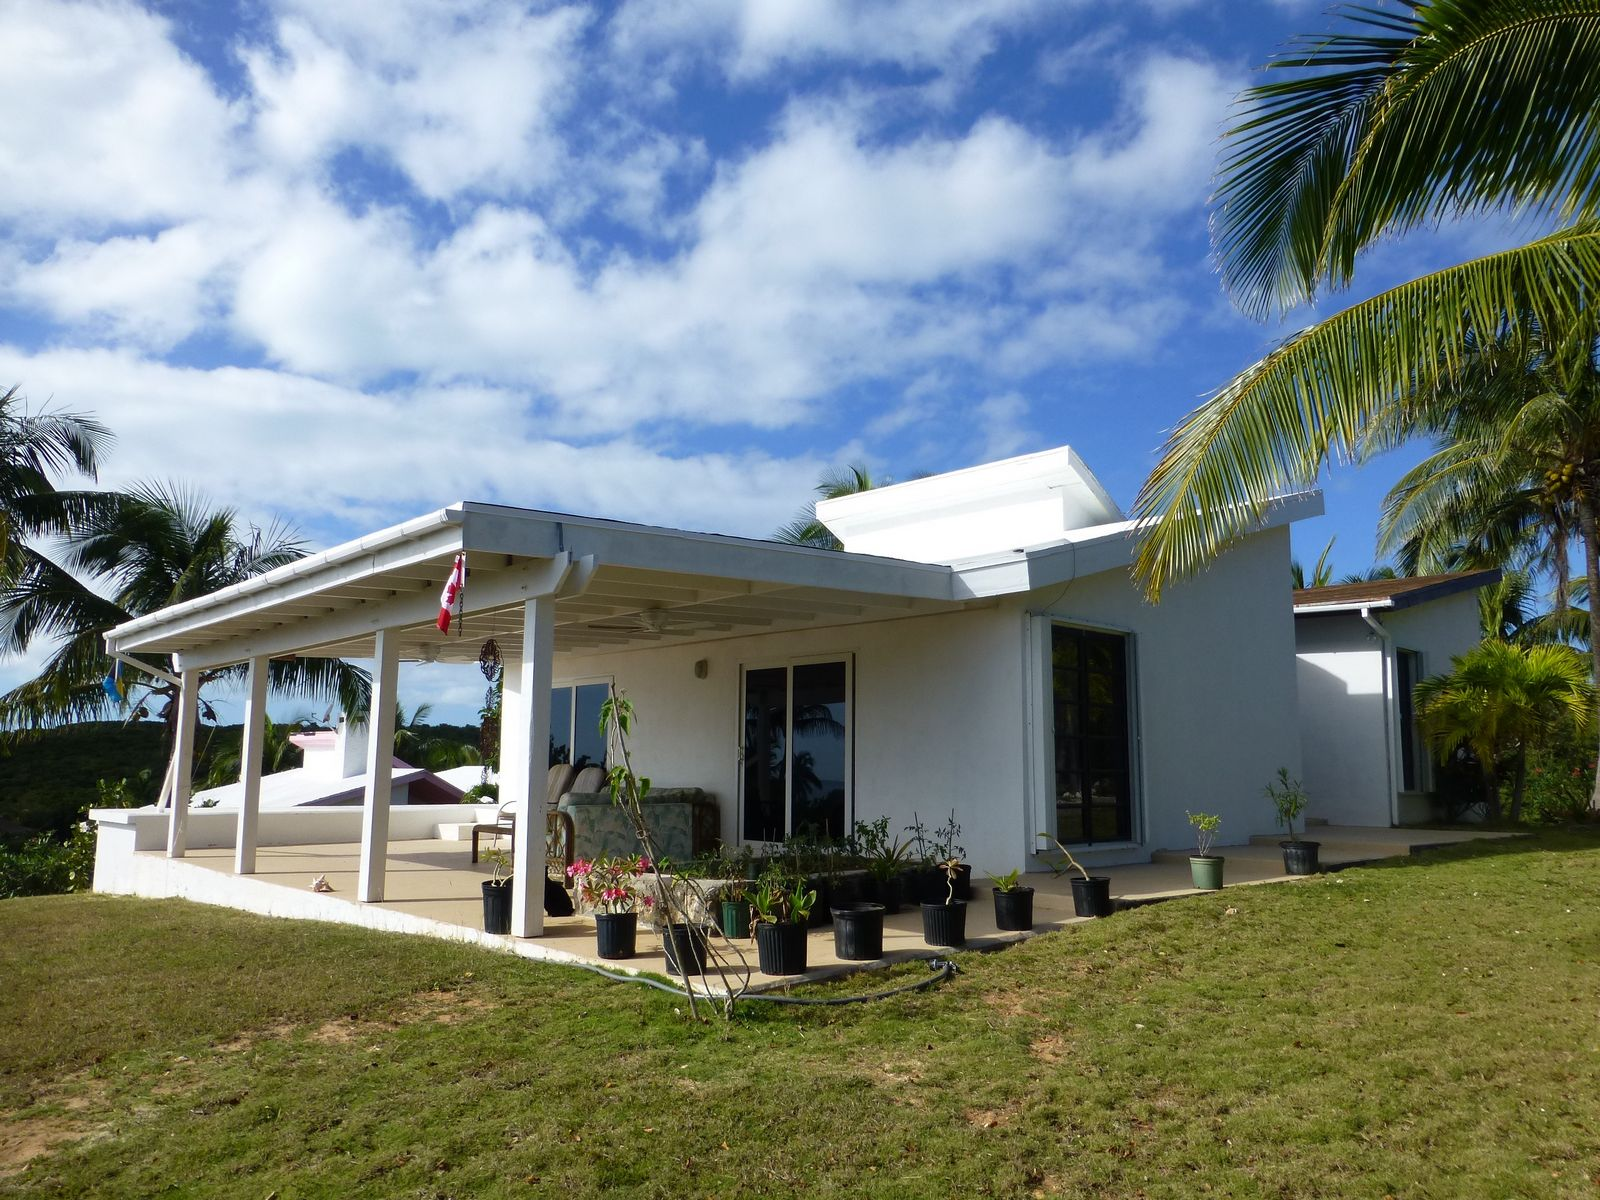 Single Family Home for Sale at Screen Saver Oleander Gardens, Gregory Town, Eleuthera Bahamas